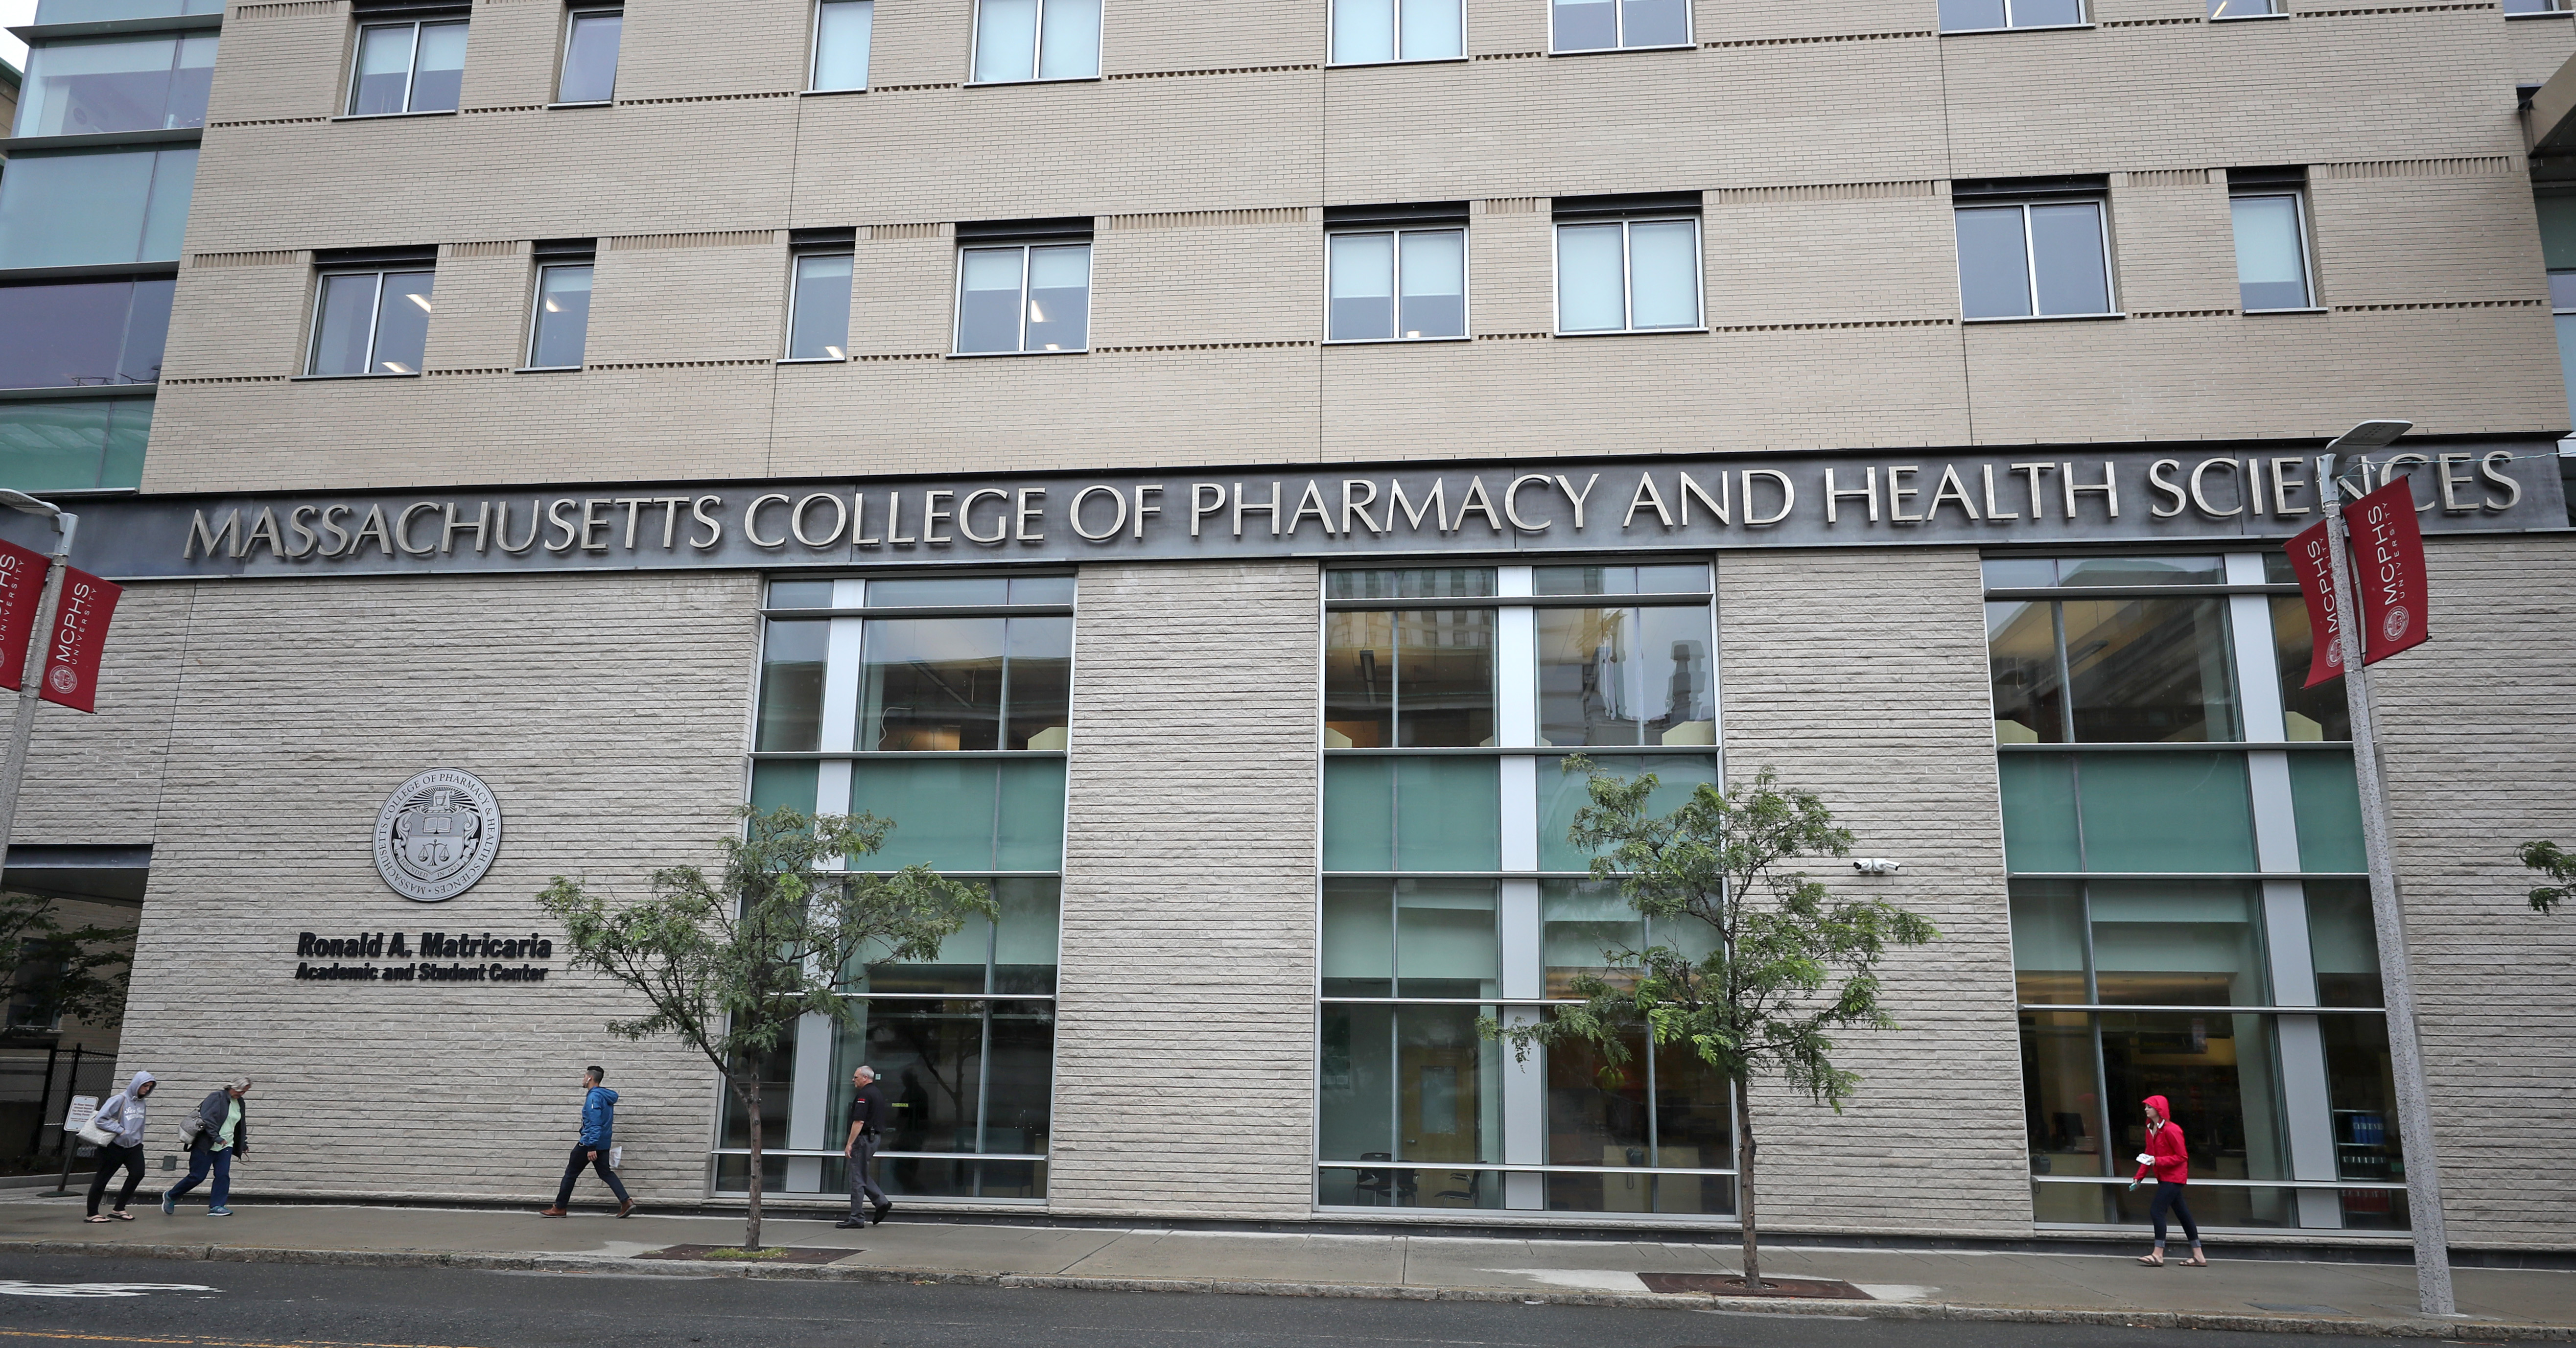 Mcphs Pa Program >> Struggles Deepen At Troubled Boston Pharmacy School The